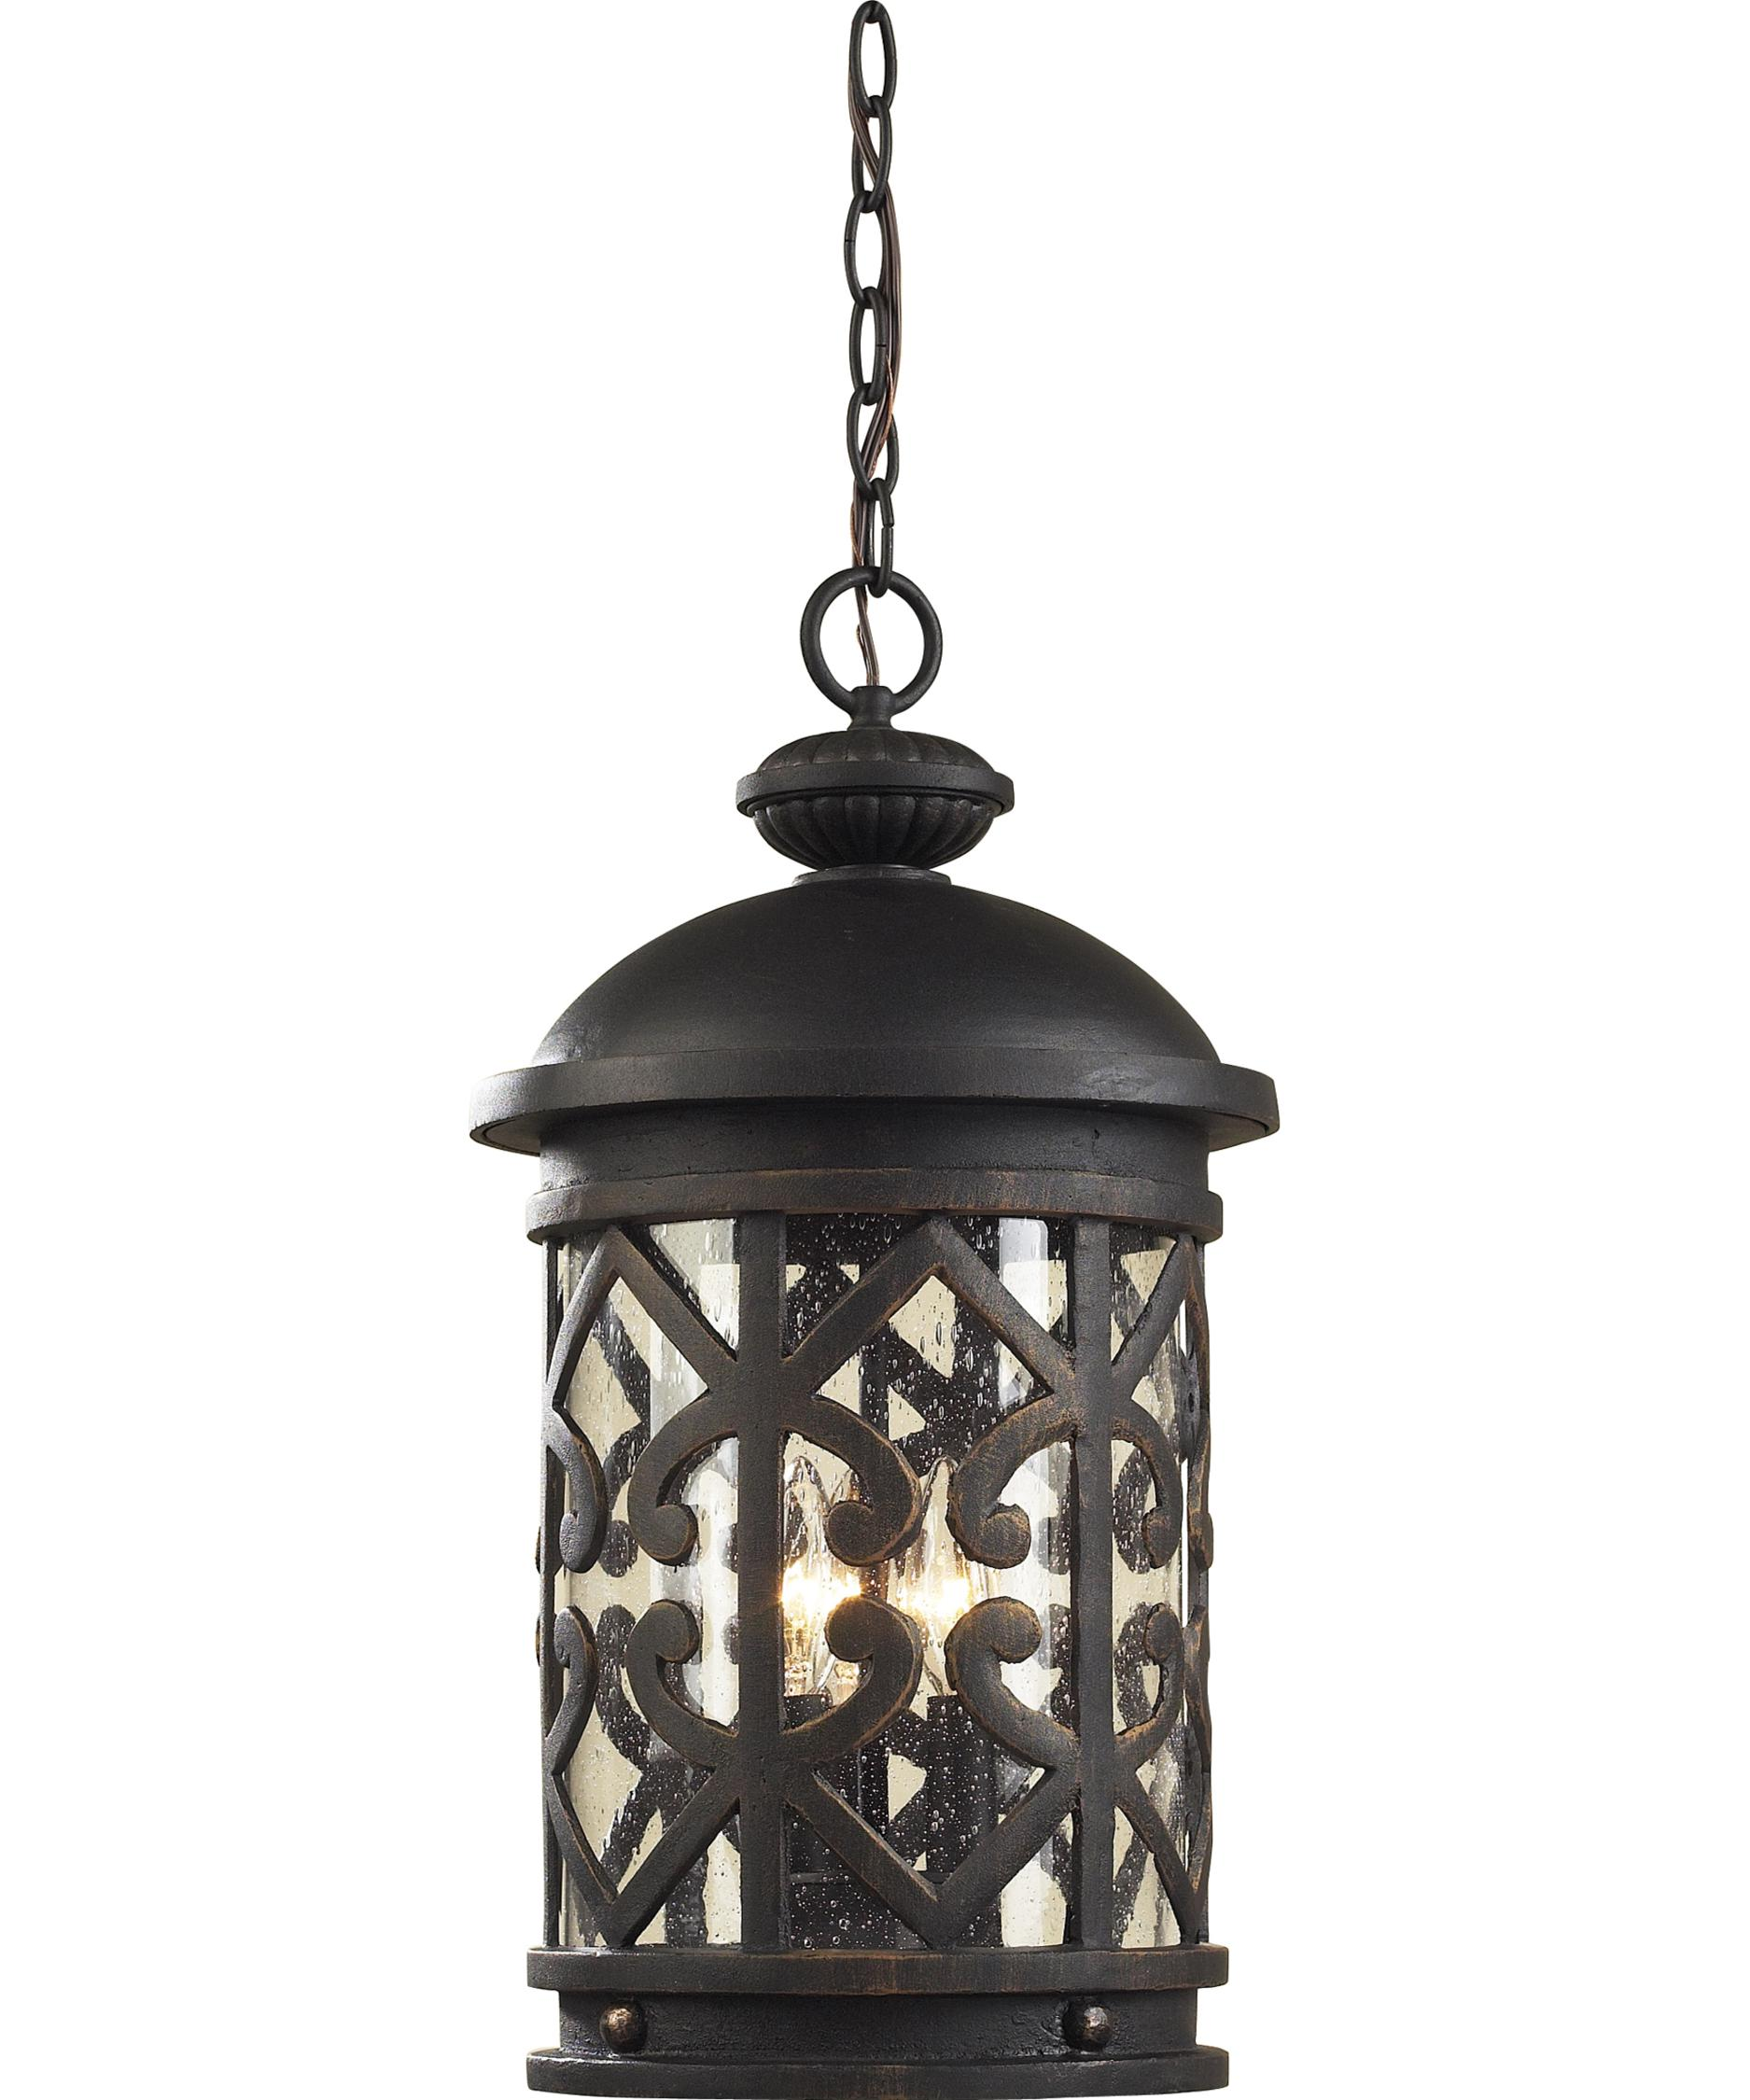 Outdoor hanging lighting - Shown In Weathered Charcoal Finish And Seeded Glass